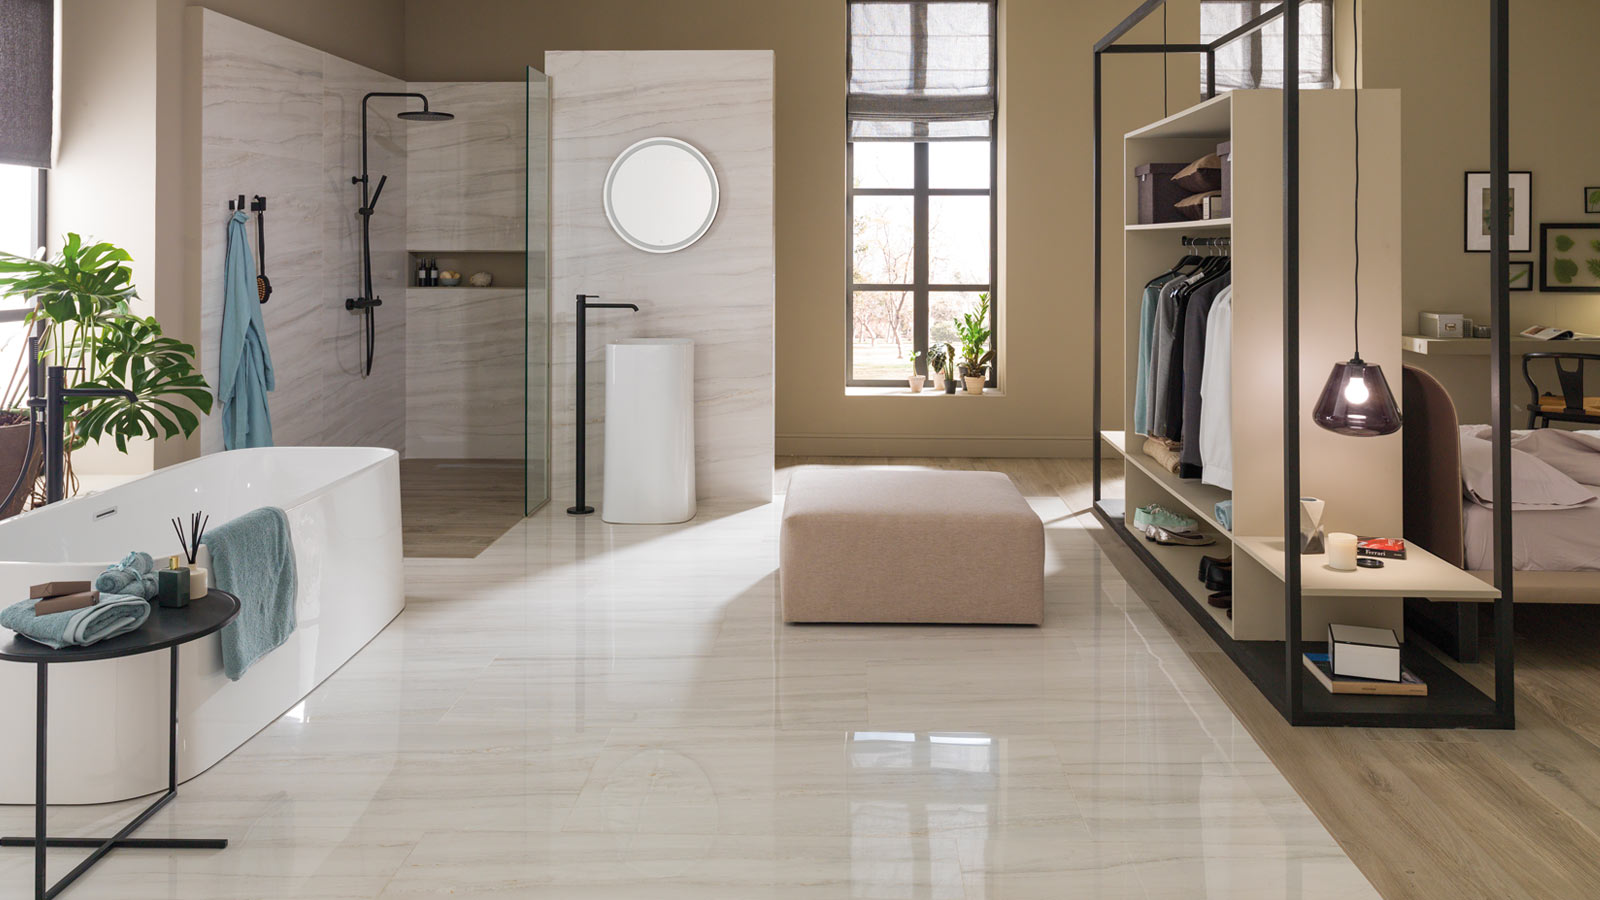 Porcelanosa's ceramic collections reproduce nature in detail